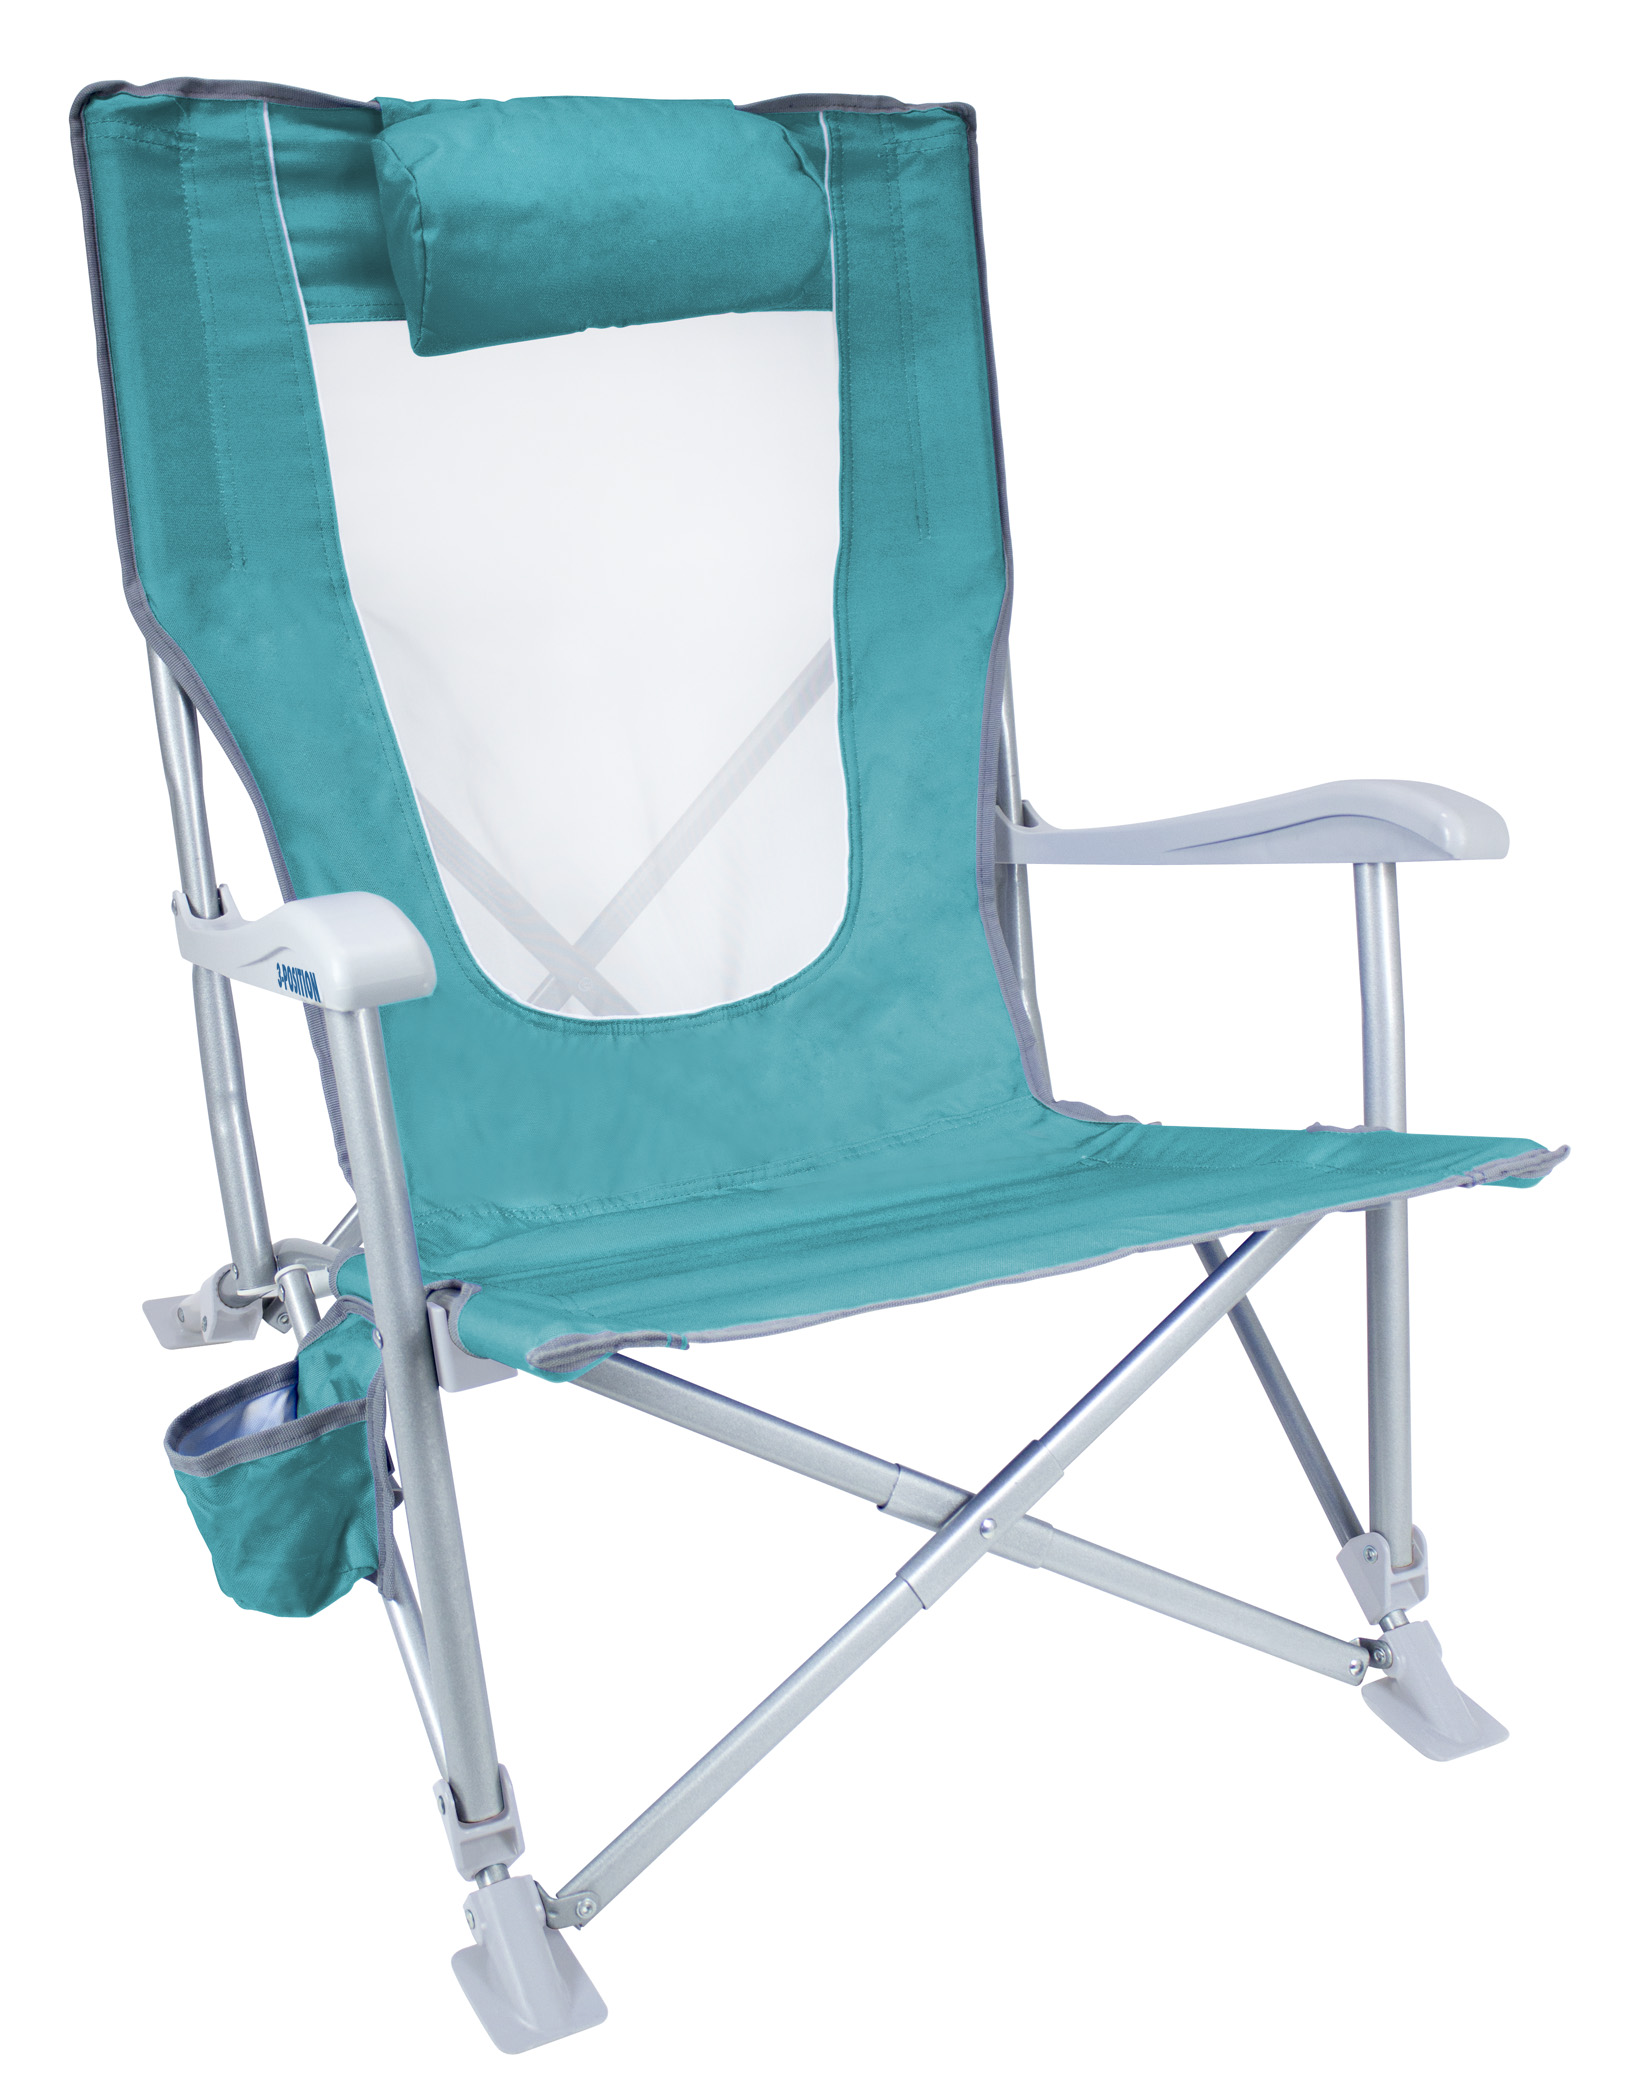 The Sun Recliner by GCI Waterside